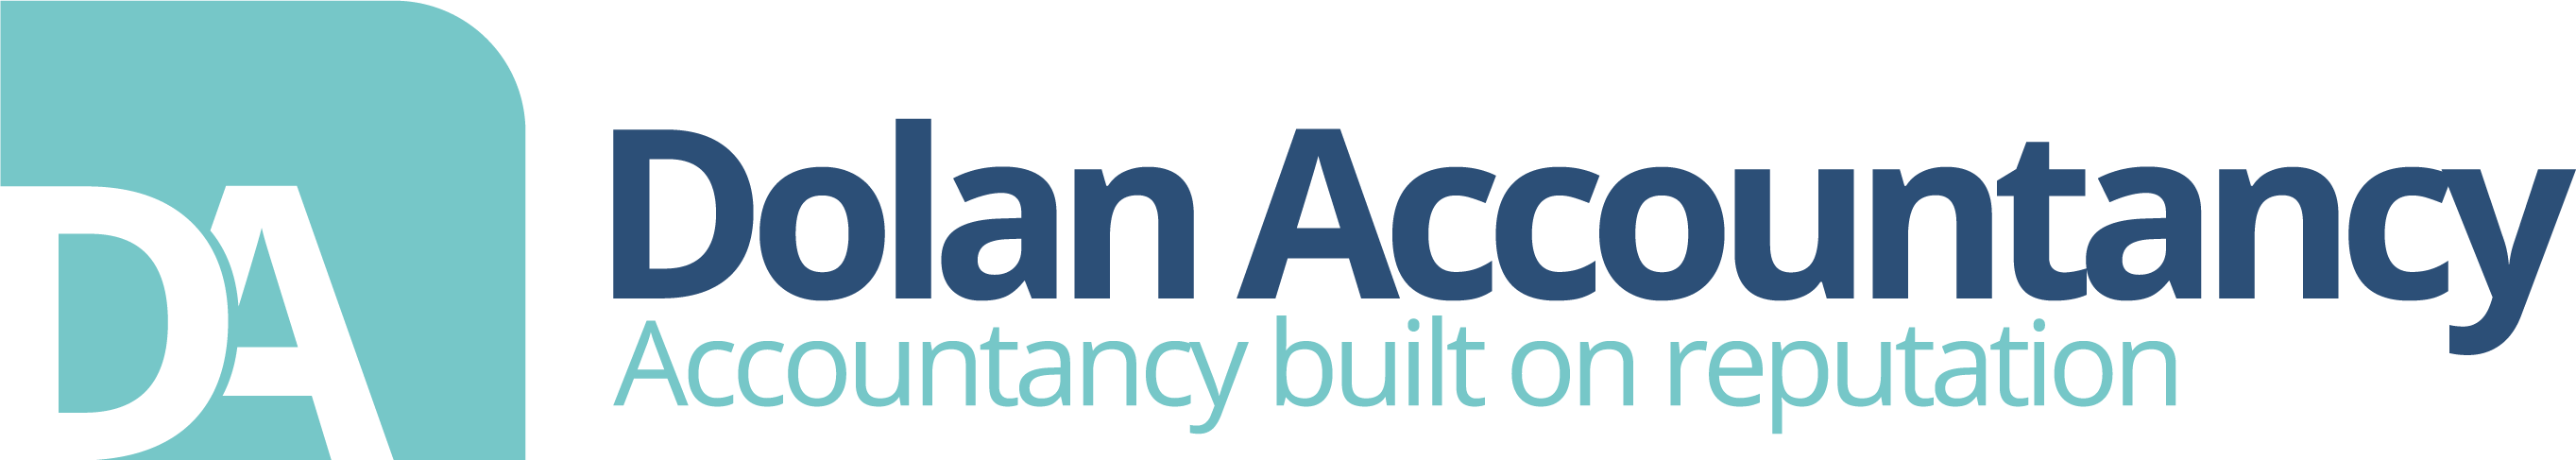 Dolan Accountancy